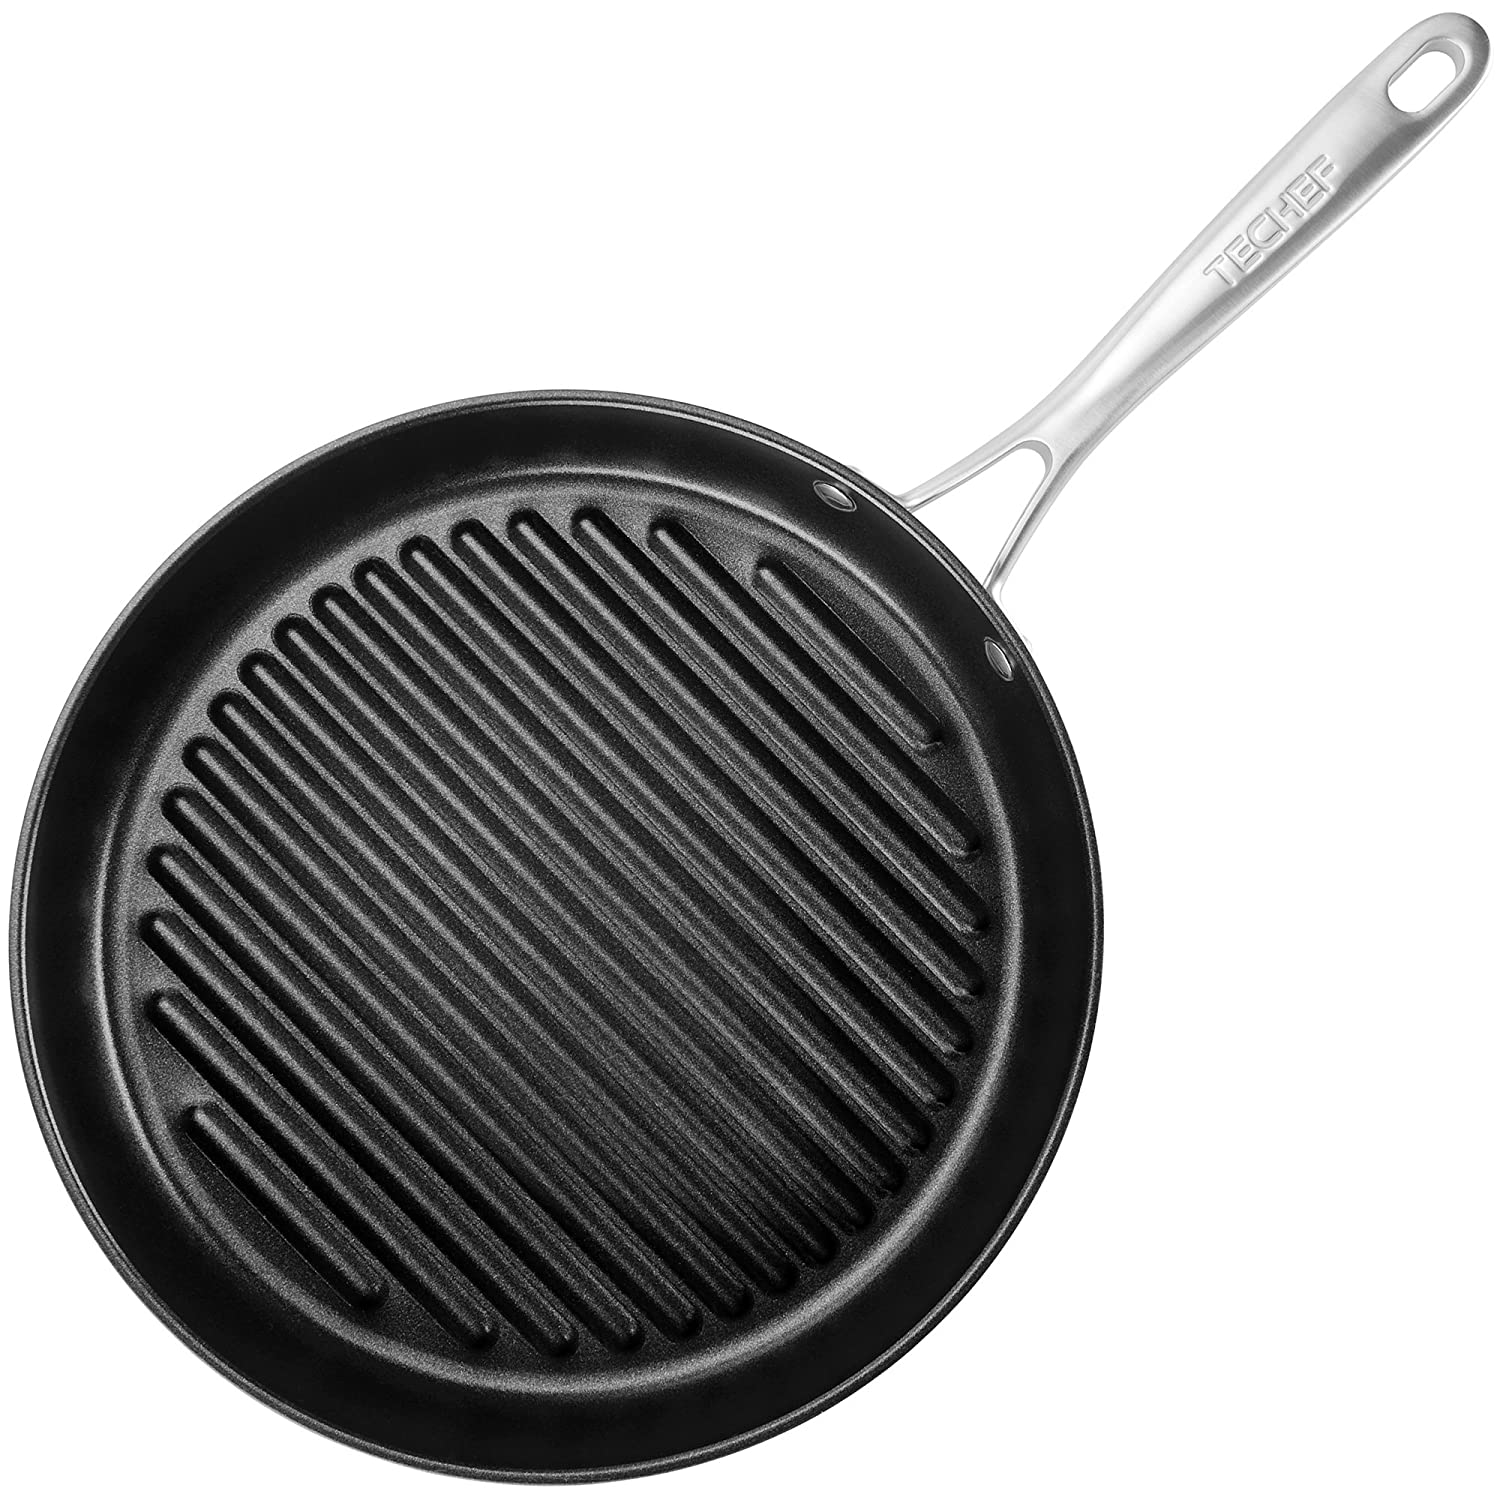 "TECHEF OXGP Onyx Collection 12"" Grill Pan New Teflon Platinum Non-Stick Coating (PFOA Free), Made in Korea"", Black"